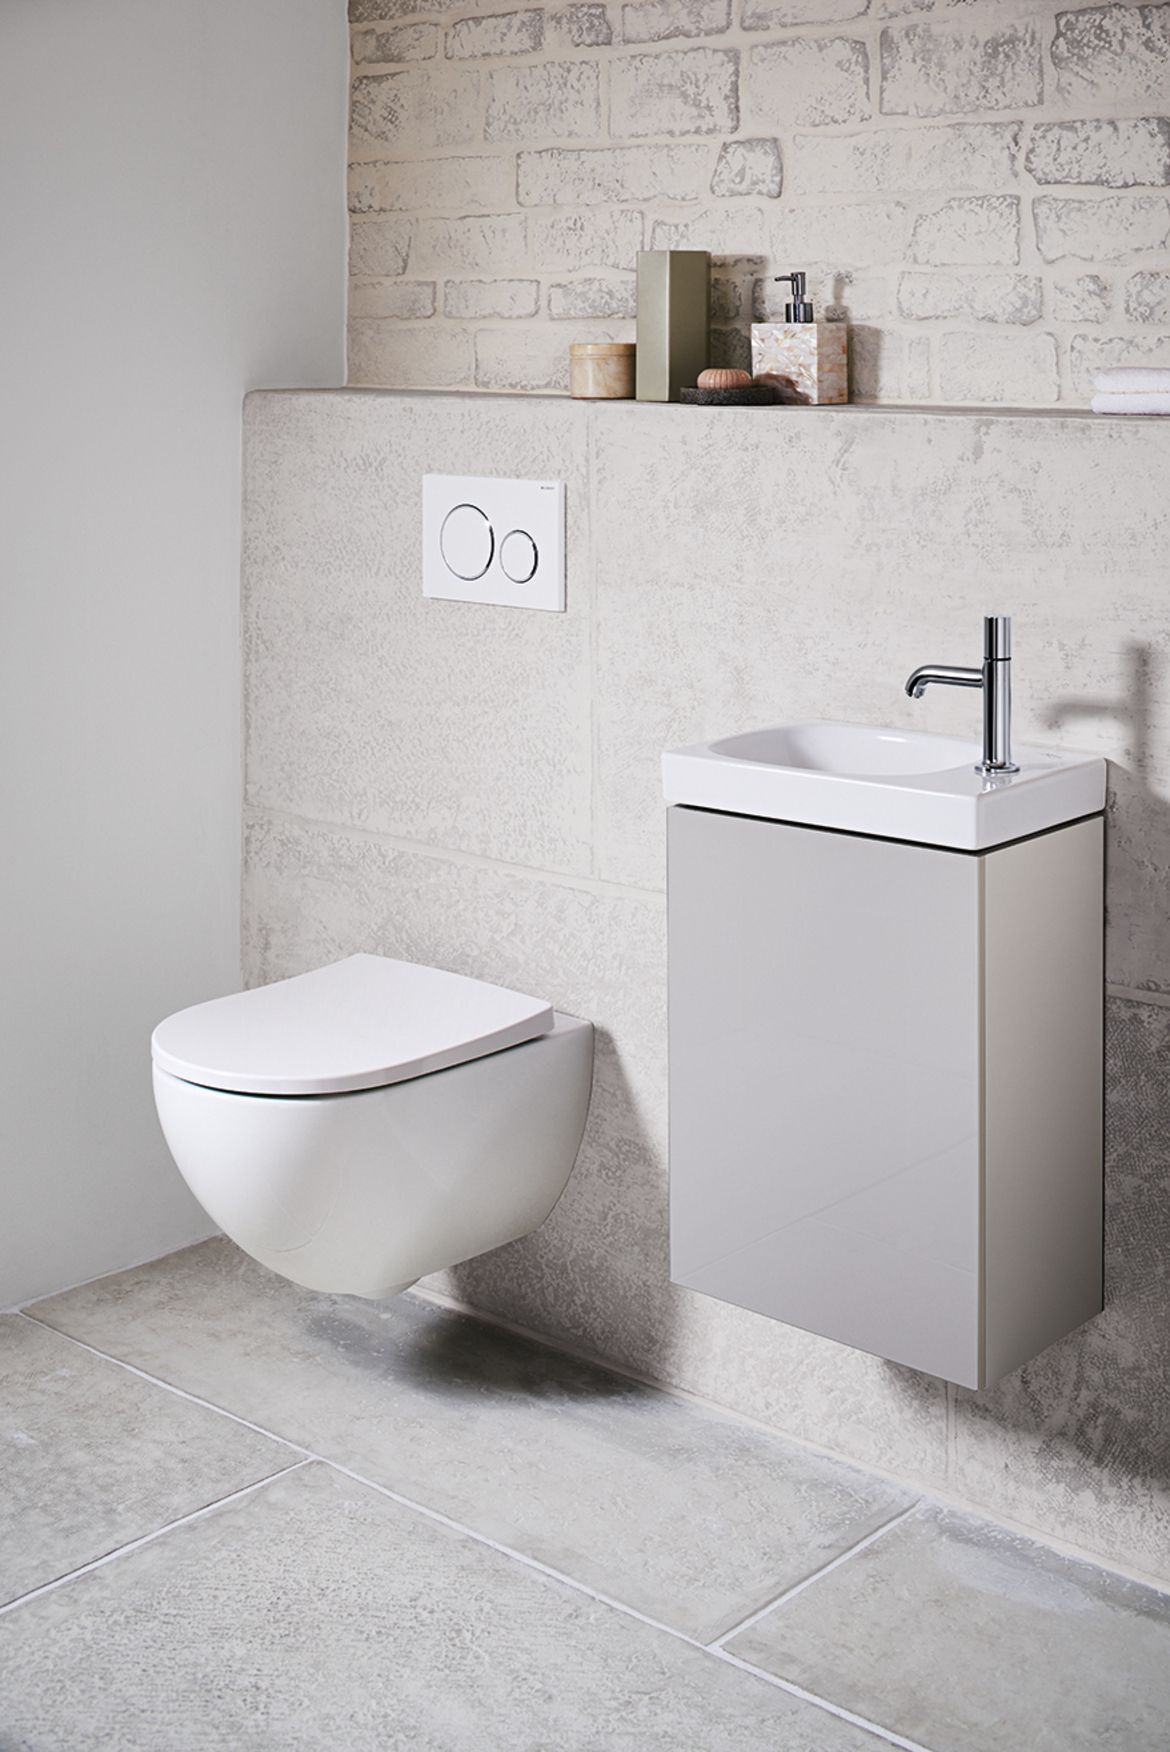 In Wall Systems For Wall Hung Toilets Geberit North